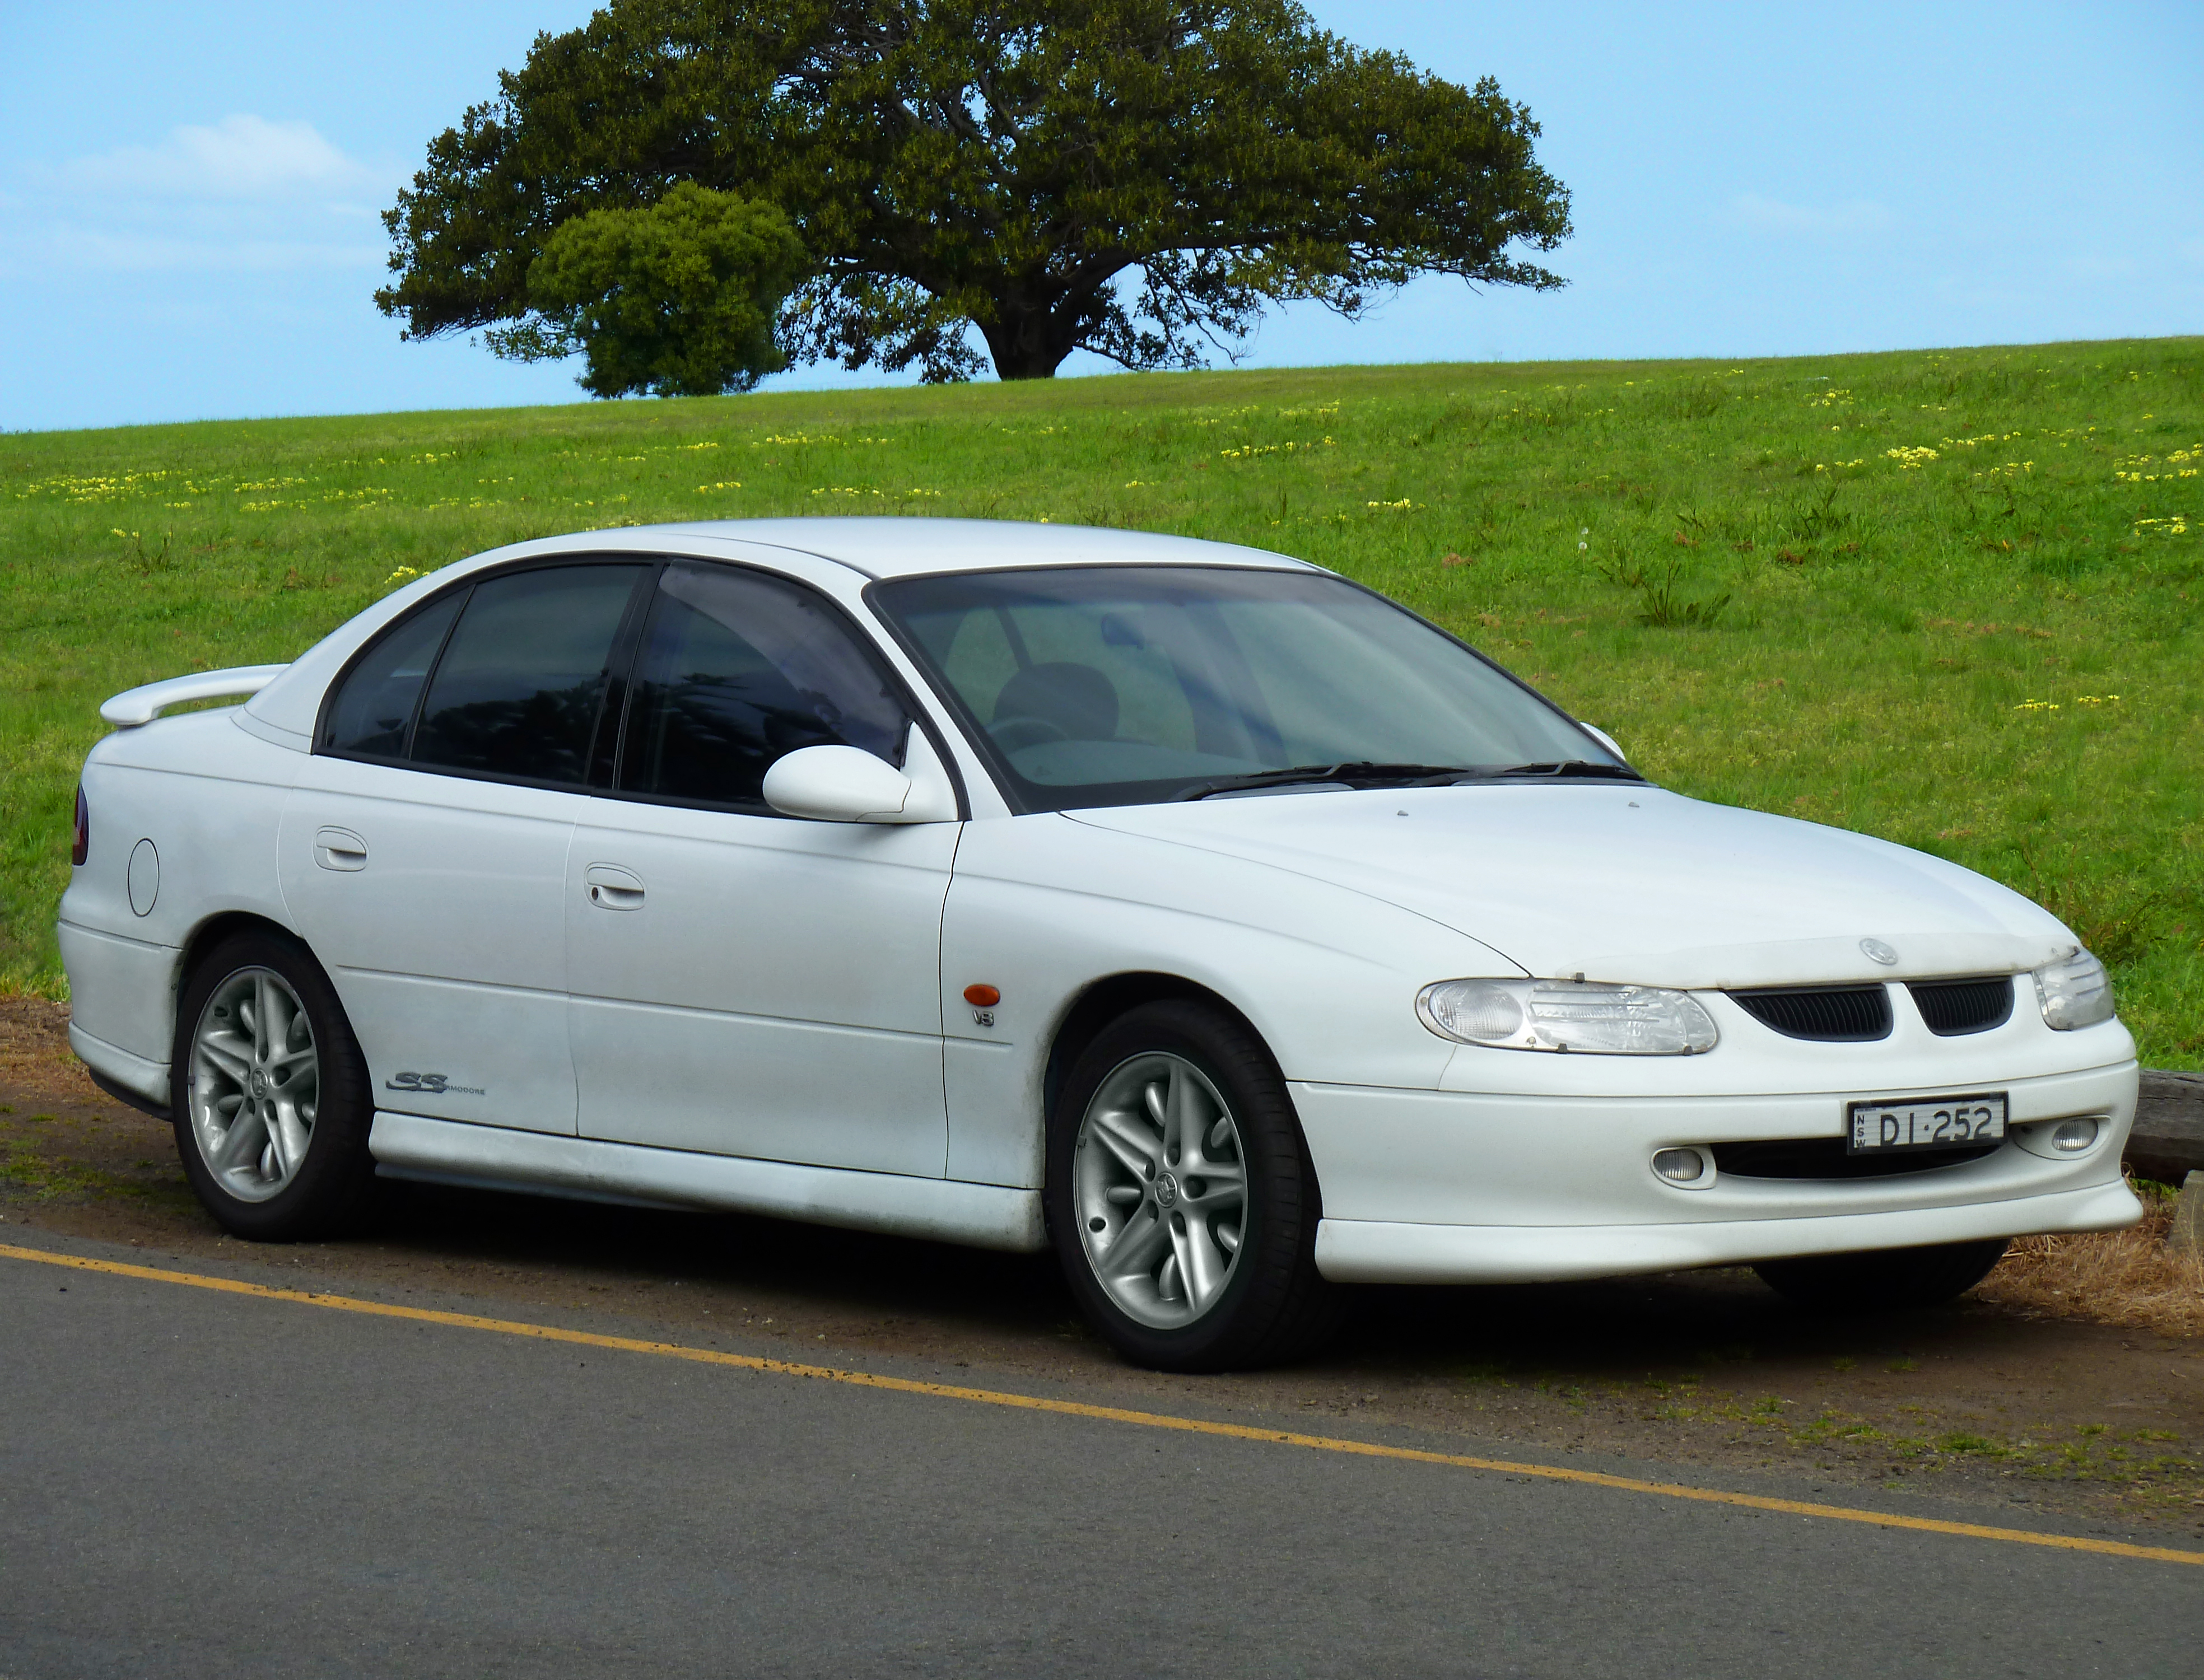 holden commodore (vt) 2007 images #1